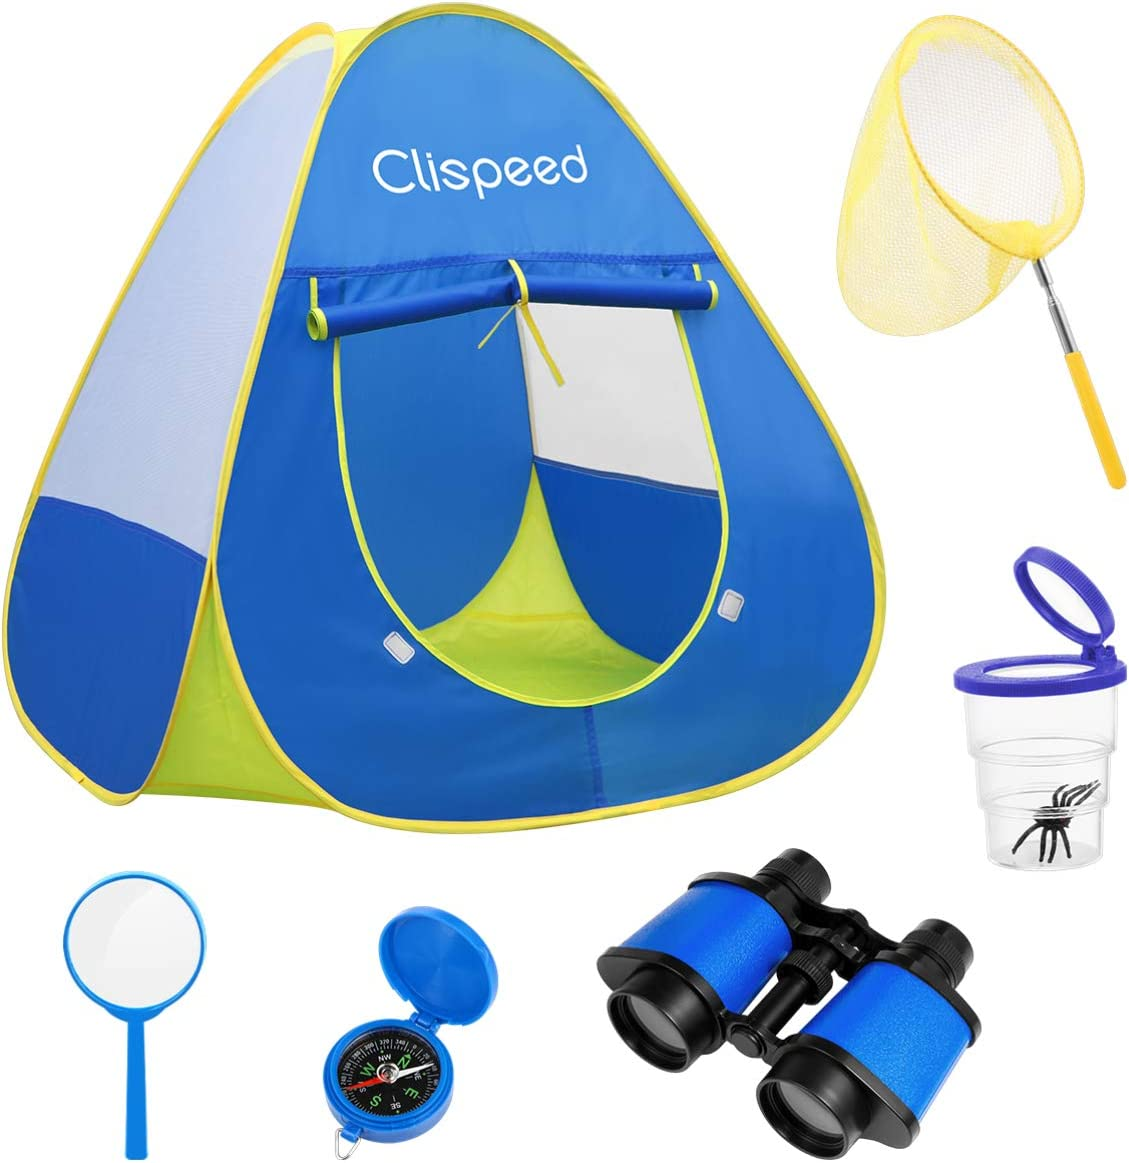 BESPORTBLE Cheap super special price 6PCS Kids Play Tent Magnifying Net Recommended Gla with Butterfly